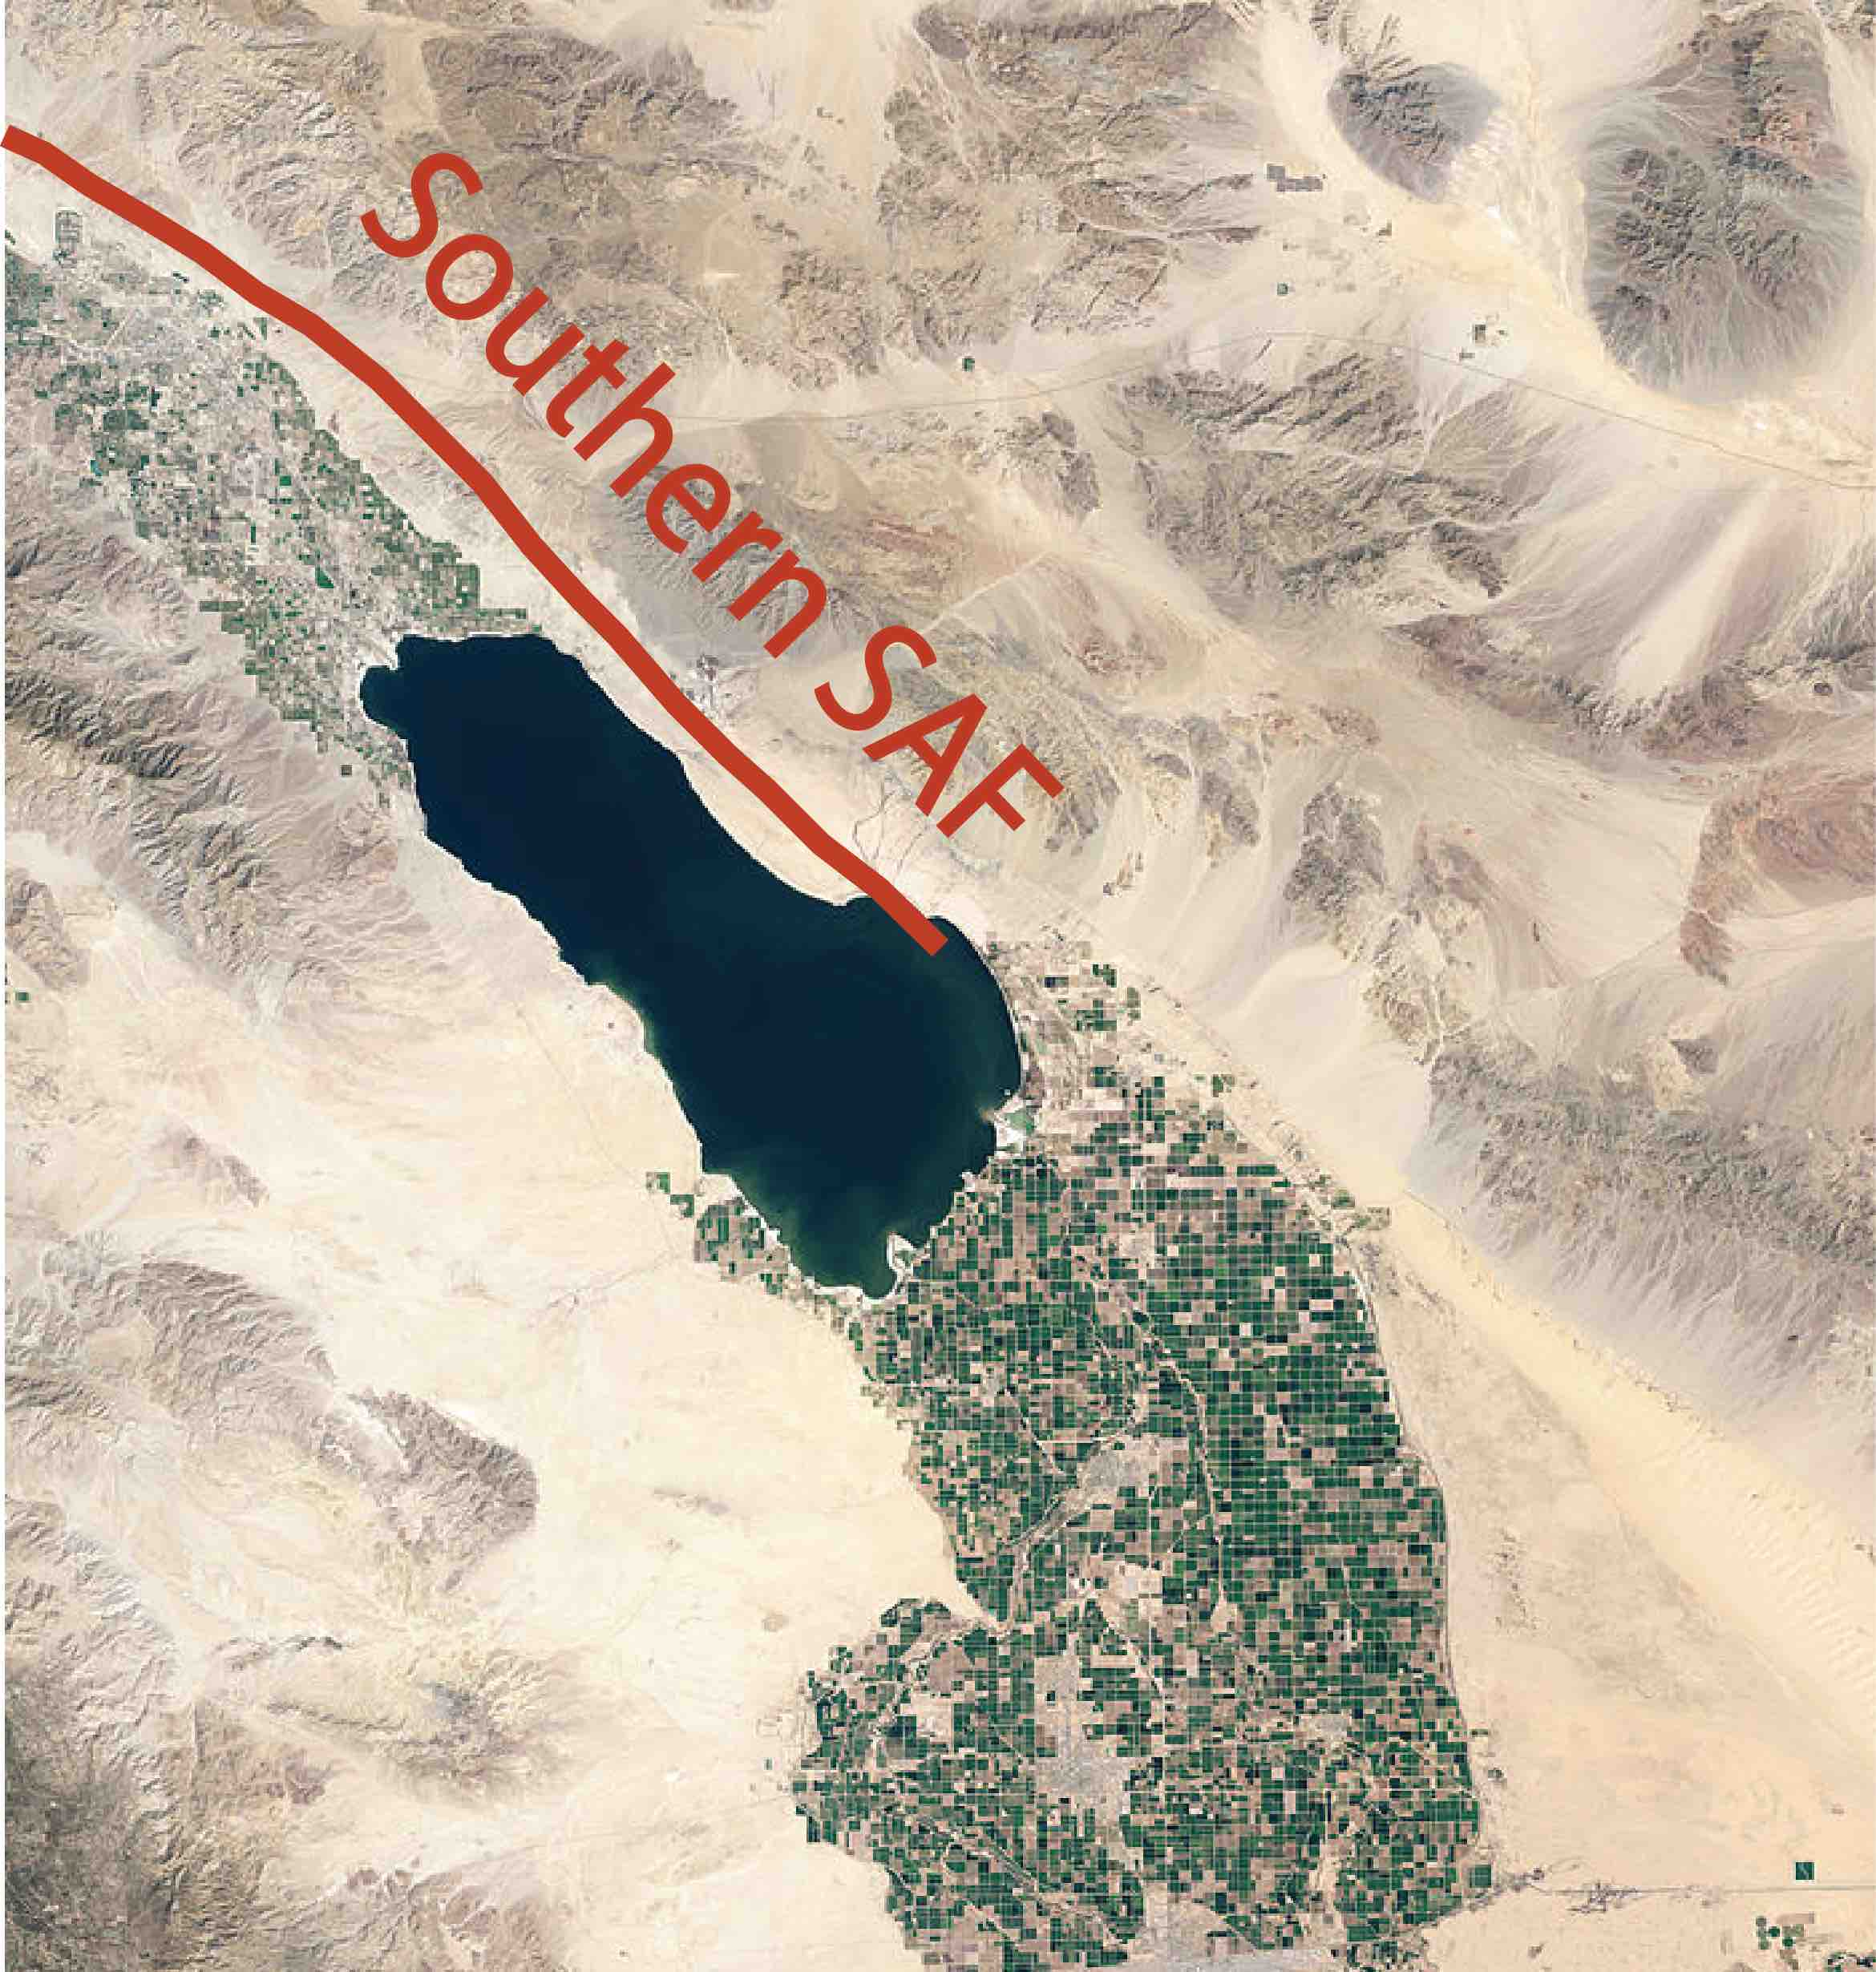 San Andreas Fault From Space Interseismic st...